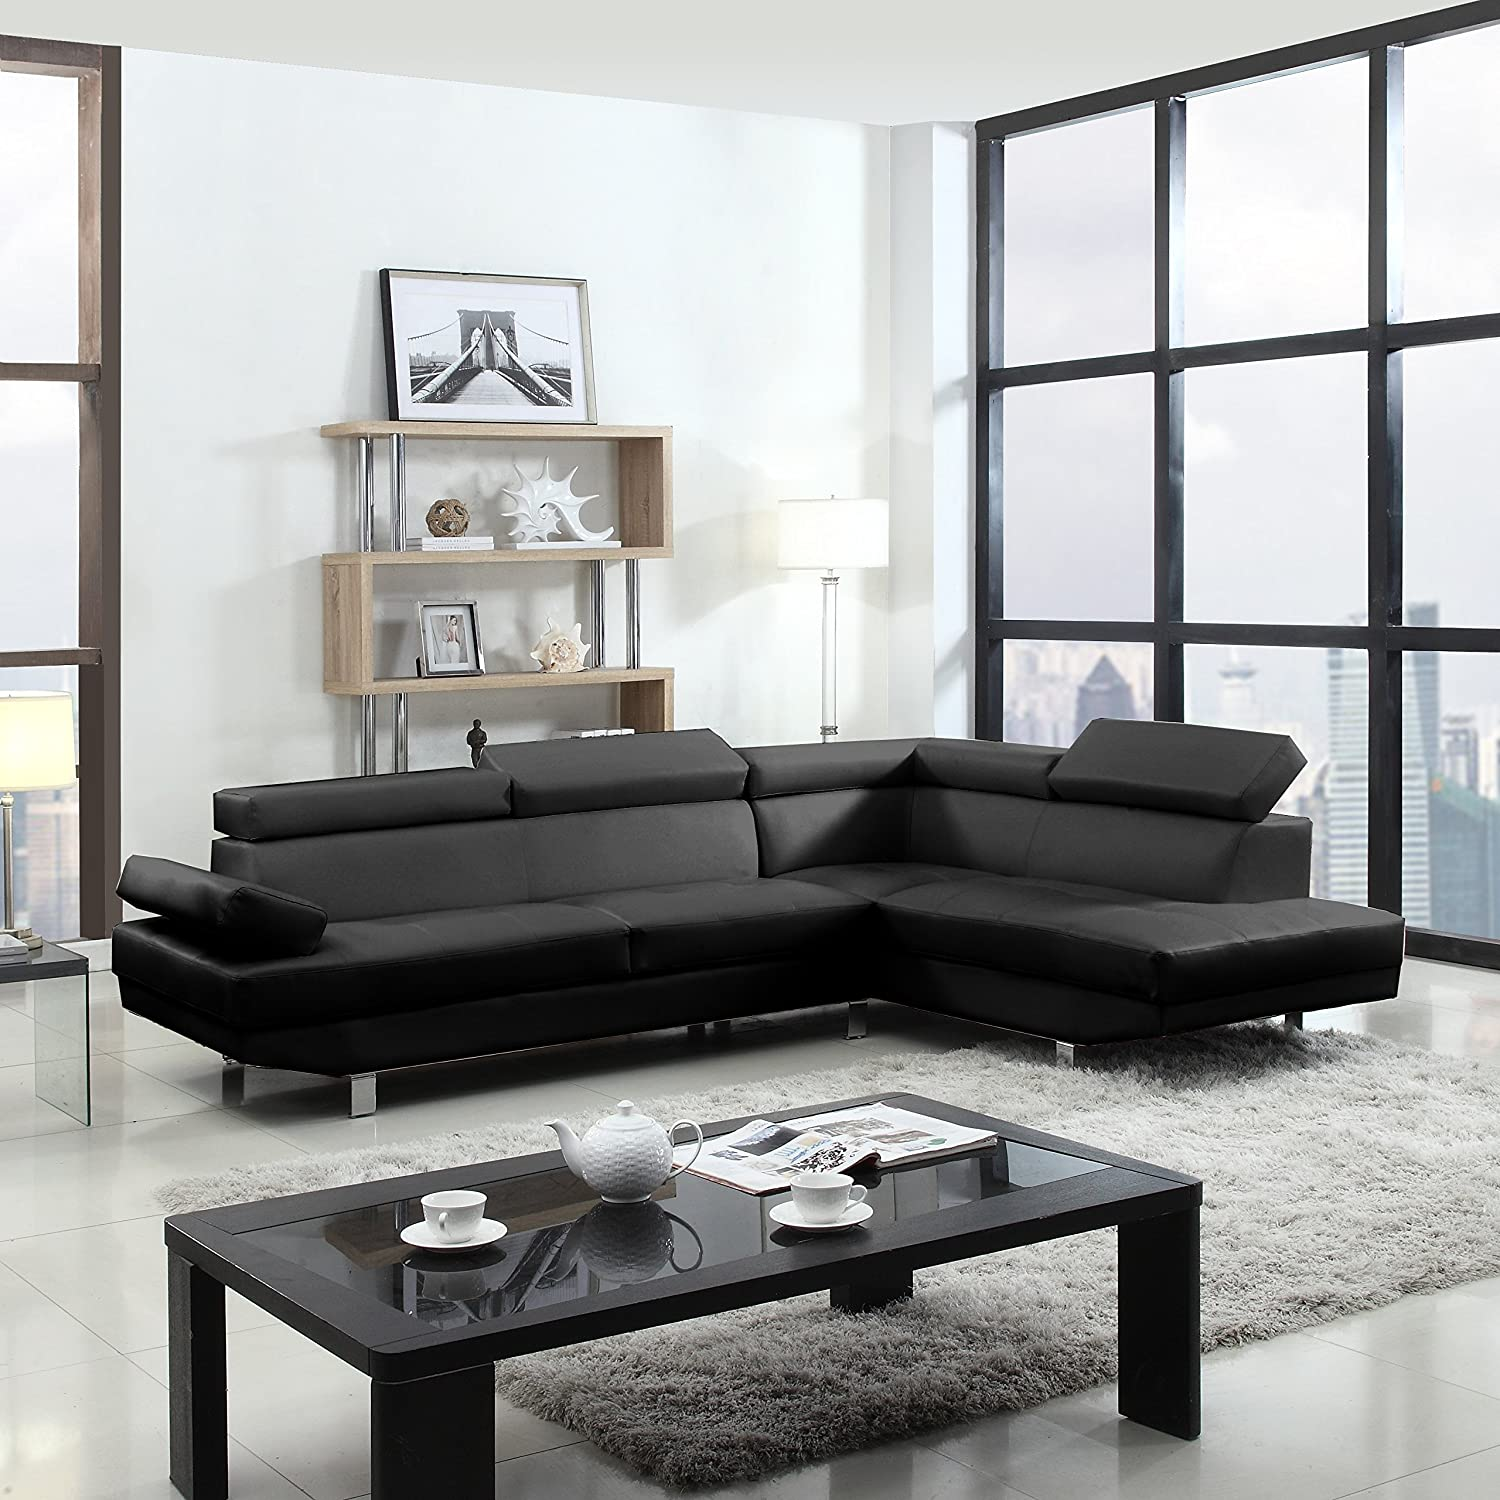 Amazoncom 2 Piece Modern Contemporary Faux Leather Sectional Sofa